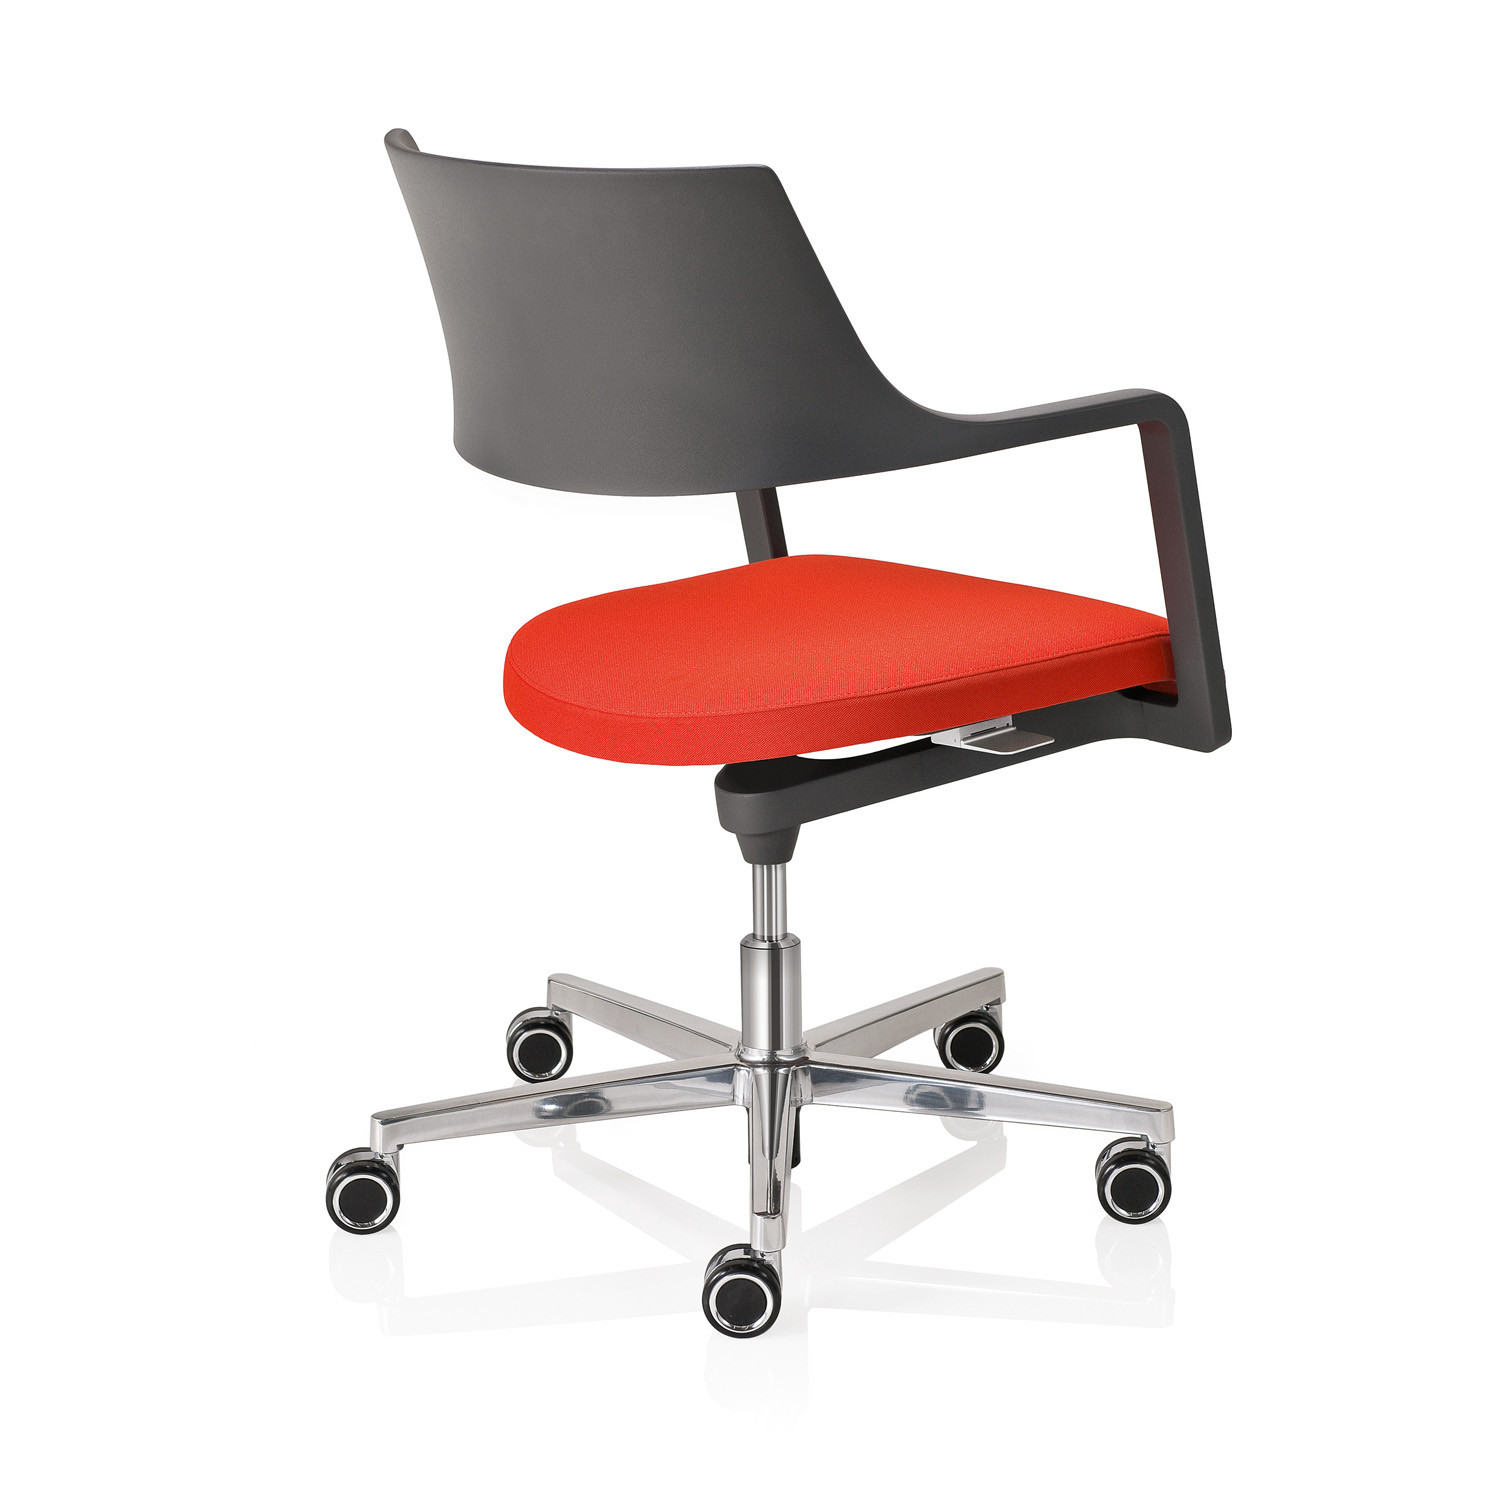 Tempuro Swivel Chair with castors